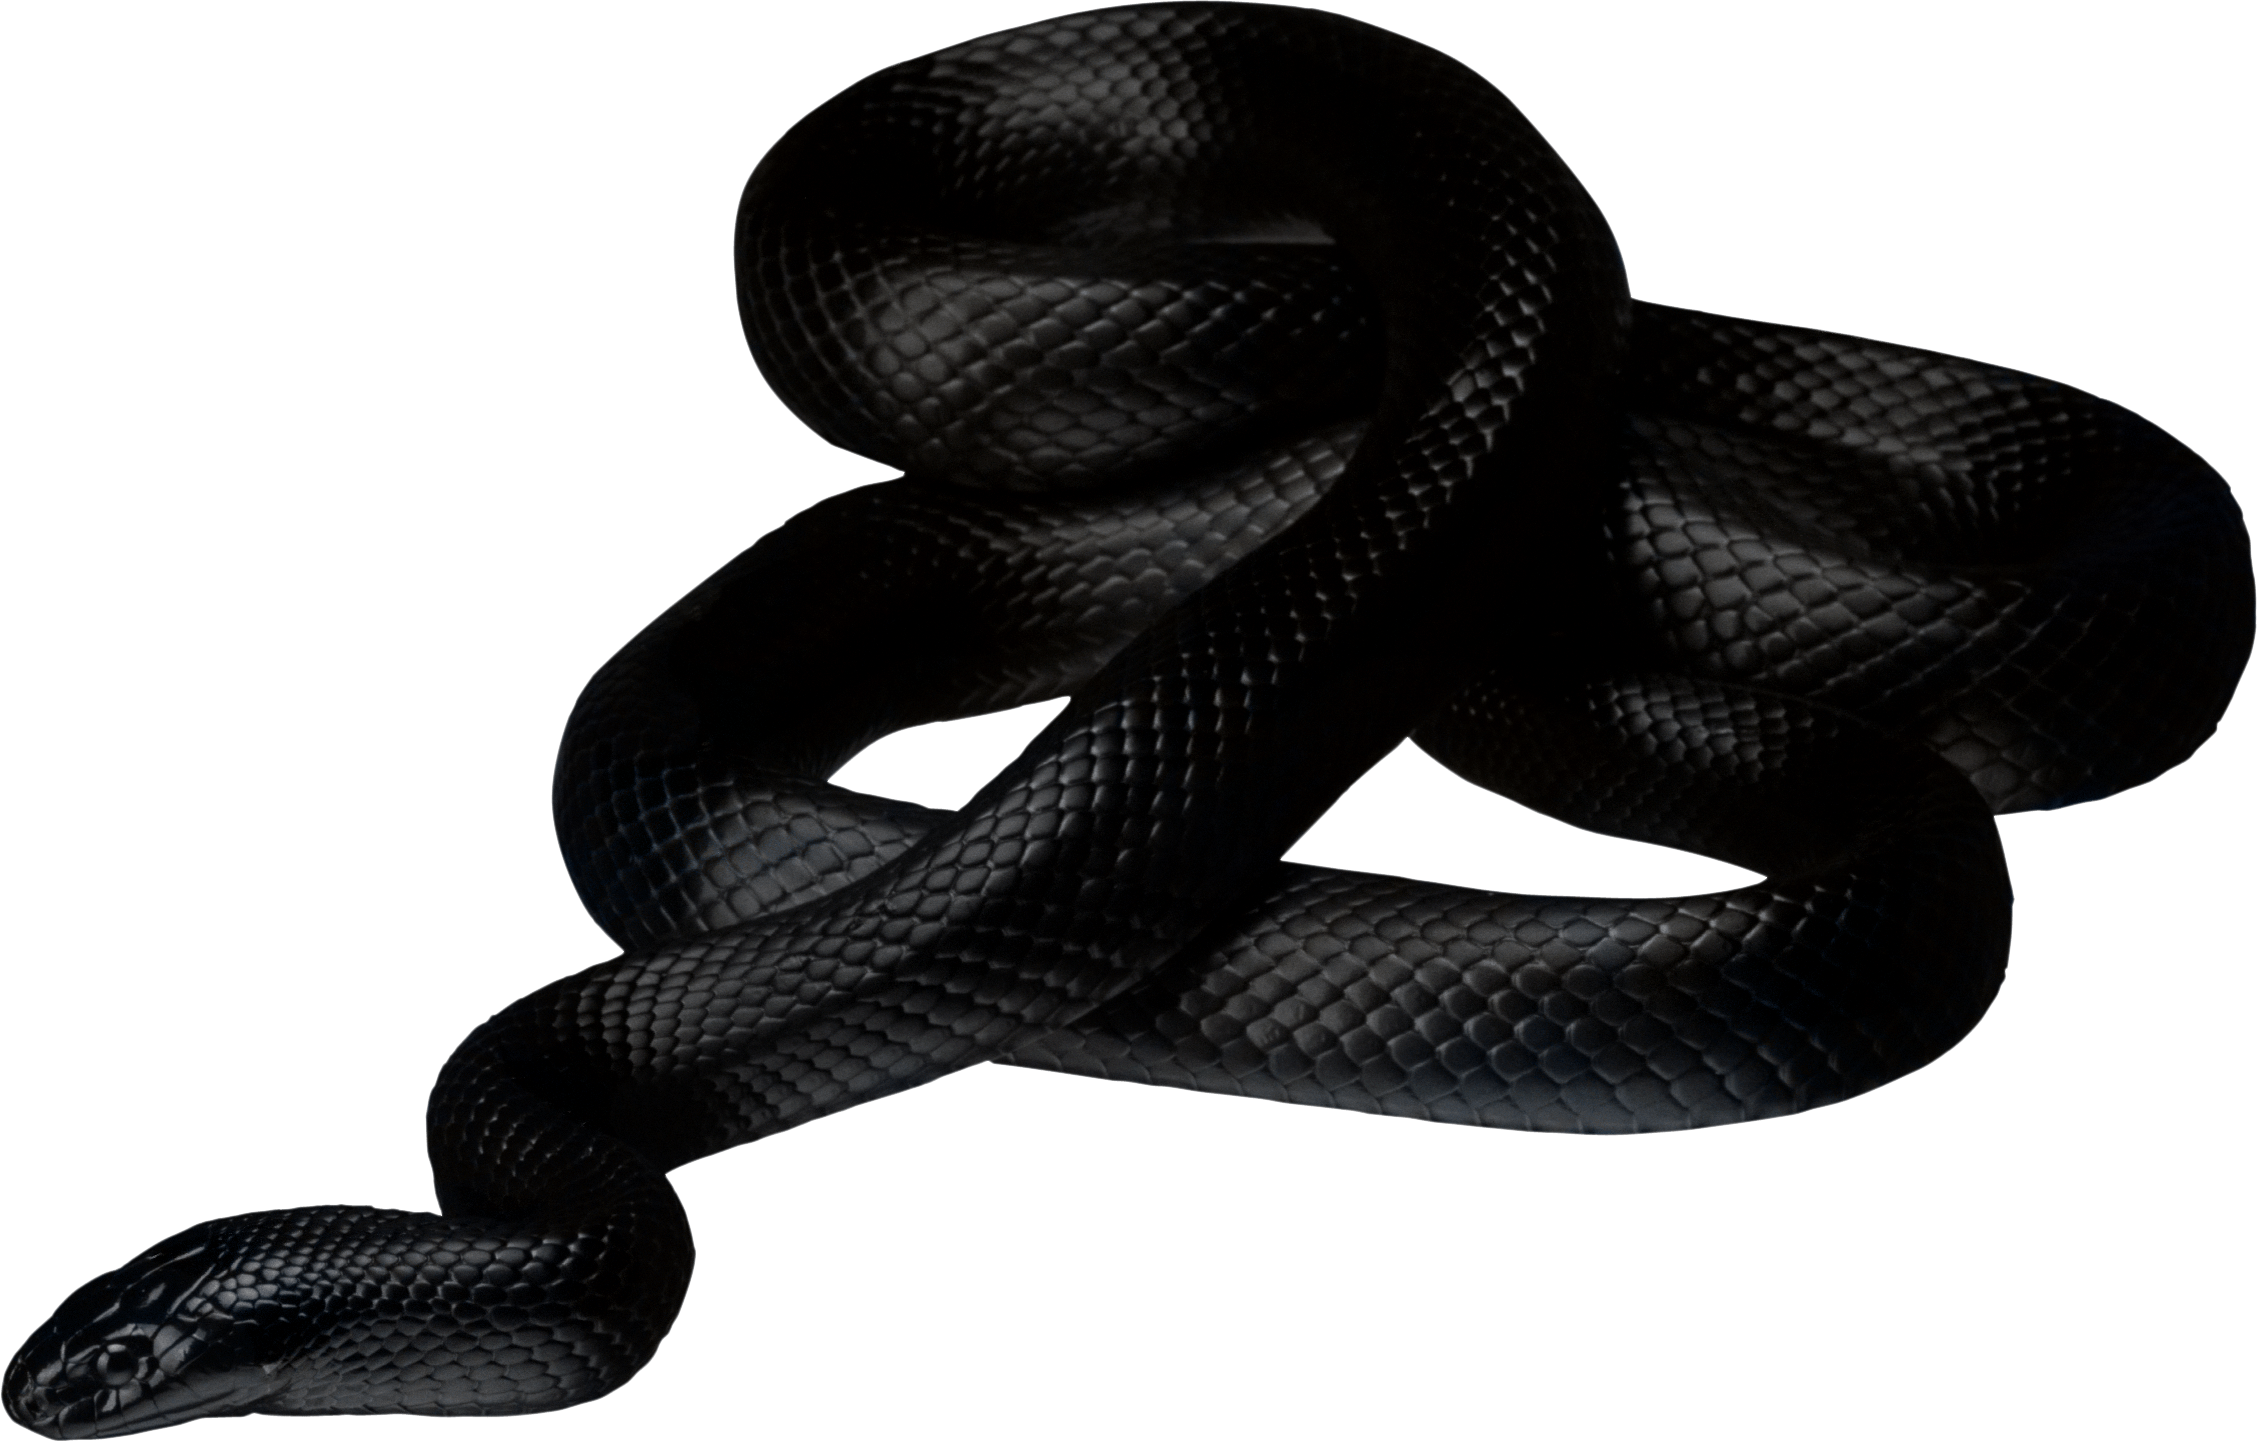 Clipart snake king snake. Black transparent png stickpng